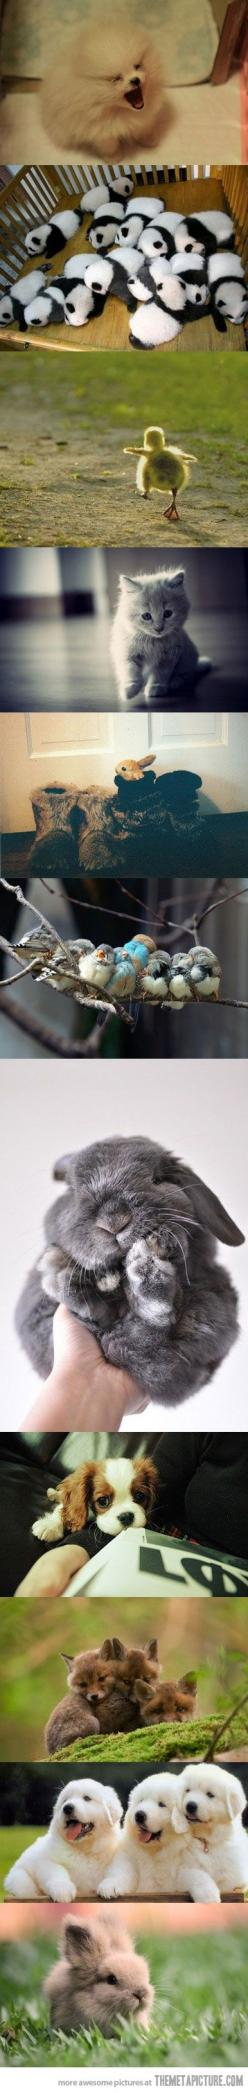 Little balls of fur: Baby Pandas, Babies, Cuteness Overload, Ball, Sweet, Cute Baby Animals, Cute Animals, Box, Cutest Animal